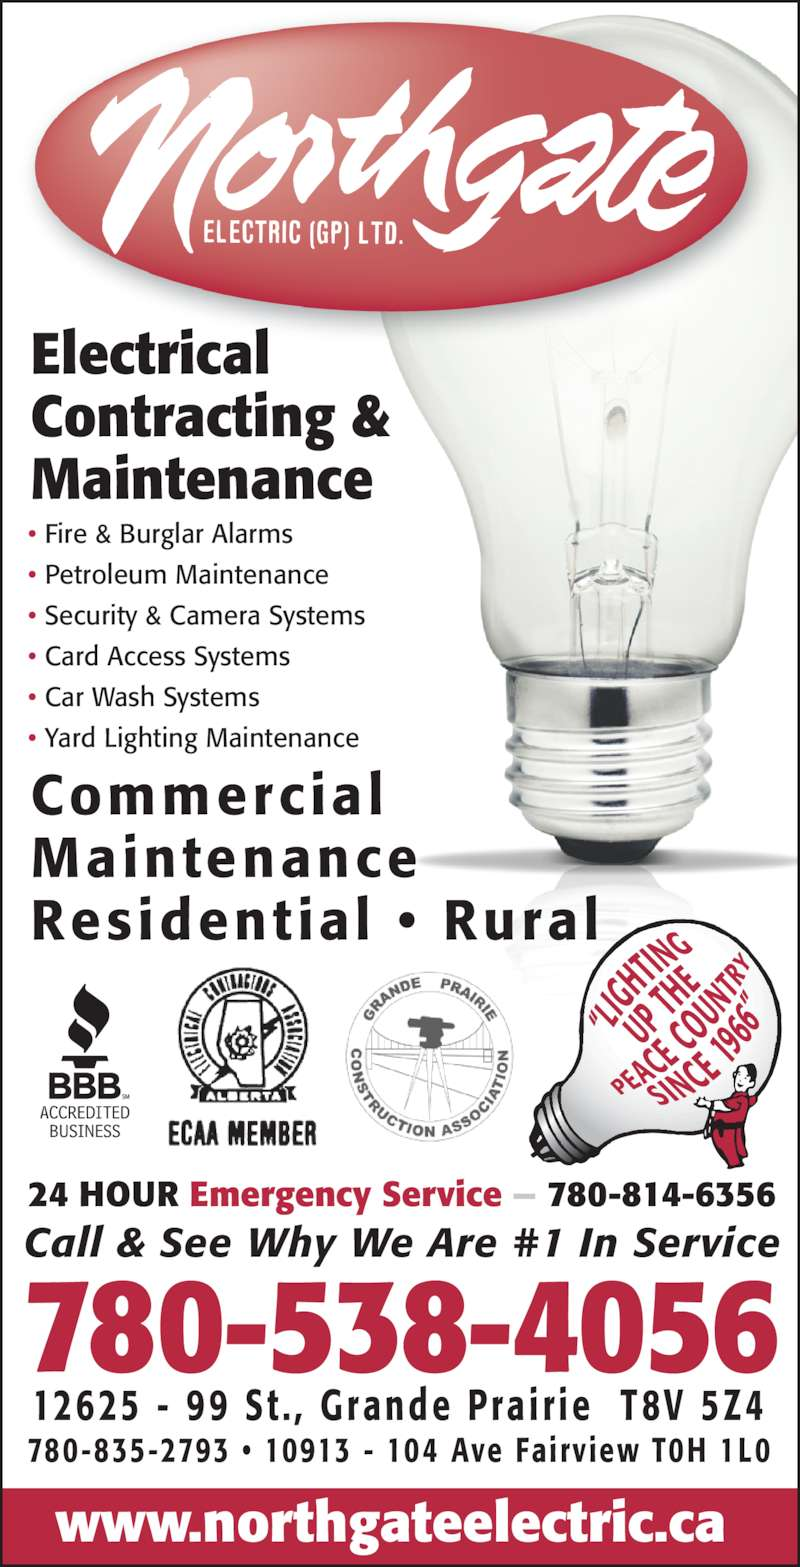 Northgate Electric (GP) Ltd (780-538-4056) - Display Ad - www.northgateelectric.ca 24 HOUR Emergency Service — 780-814-6356 Electrical Contracting & Maintenance • Fire & Burglar Alarms • Petroleum Maintenance • Security & Camera Systems • Card Access Systems • Car Wash Systems • Yard Lighting Maintenance Commercial Maintenance Residential •  Rural 780-835-2793 • 10913 - 104 Ave Fairview T0H 1L0 780-538-4056 12625 -  99 St . ,  Grande Pra i r ie   T8V 5Z4 Call & See Why We Are #1 In Service